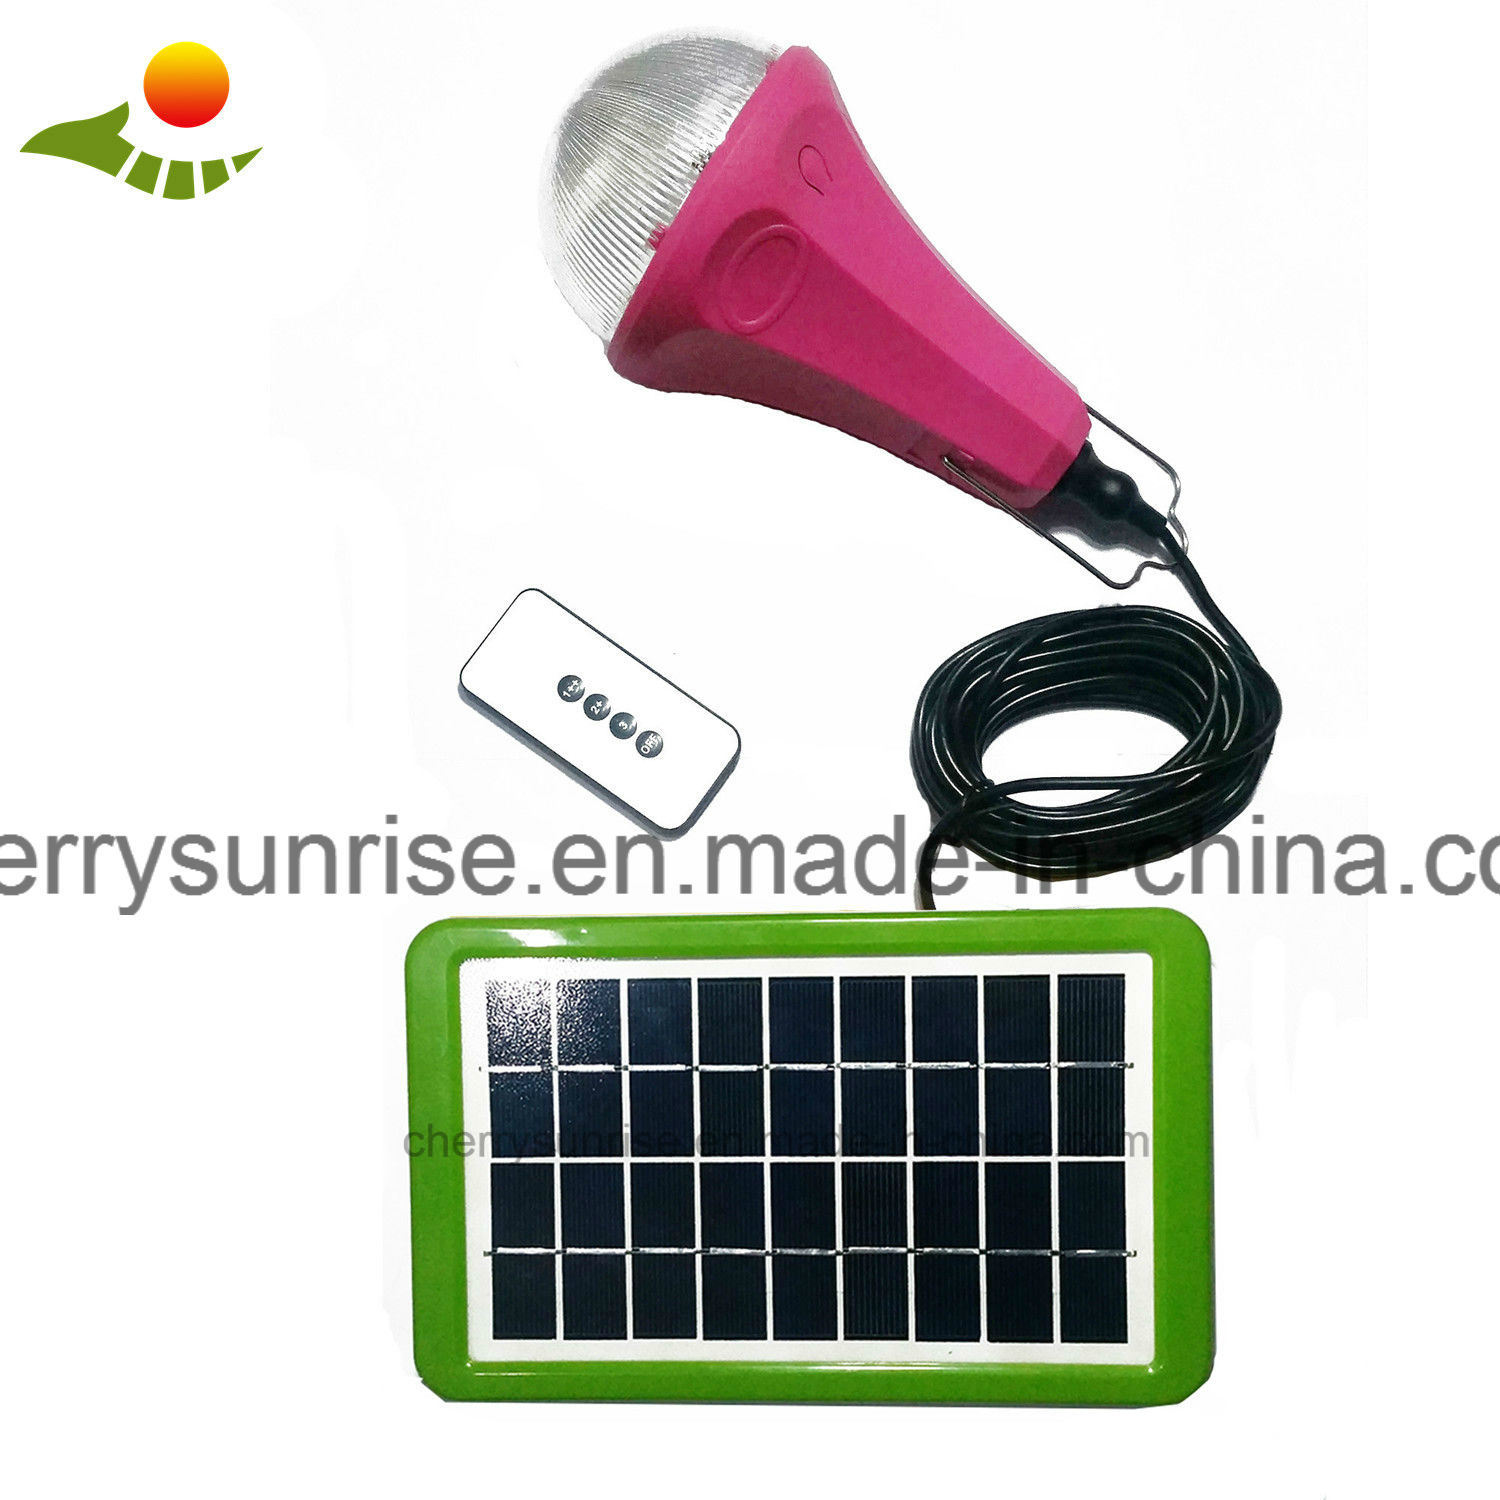 Solar Home Lighting System; LED Solar DC Lighting Kit Sale Global Sunrise Sre-99g-1